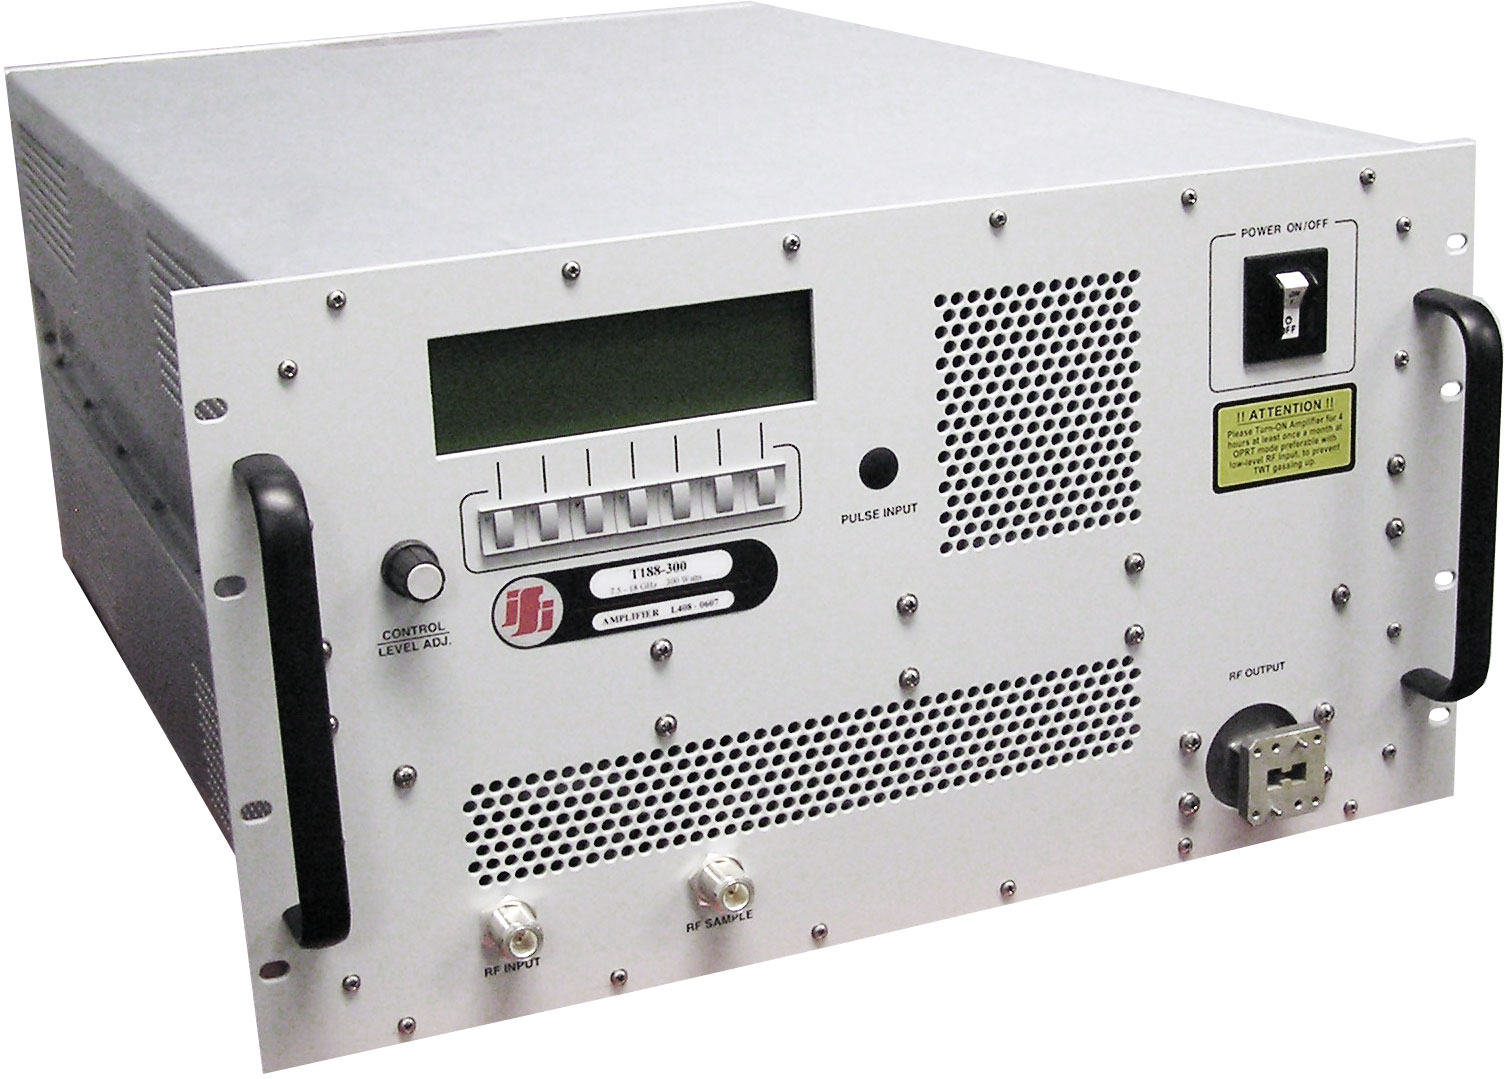 Rent IFI T188-500 High Power Amplifier 7.5 GHz - 18 GHz, 500 Watt